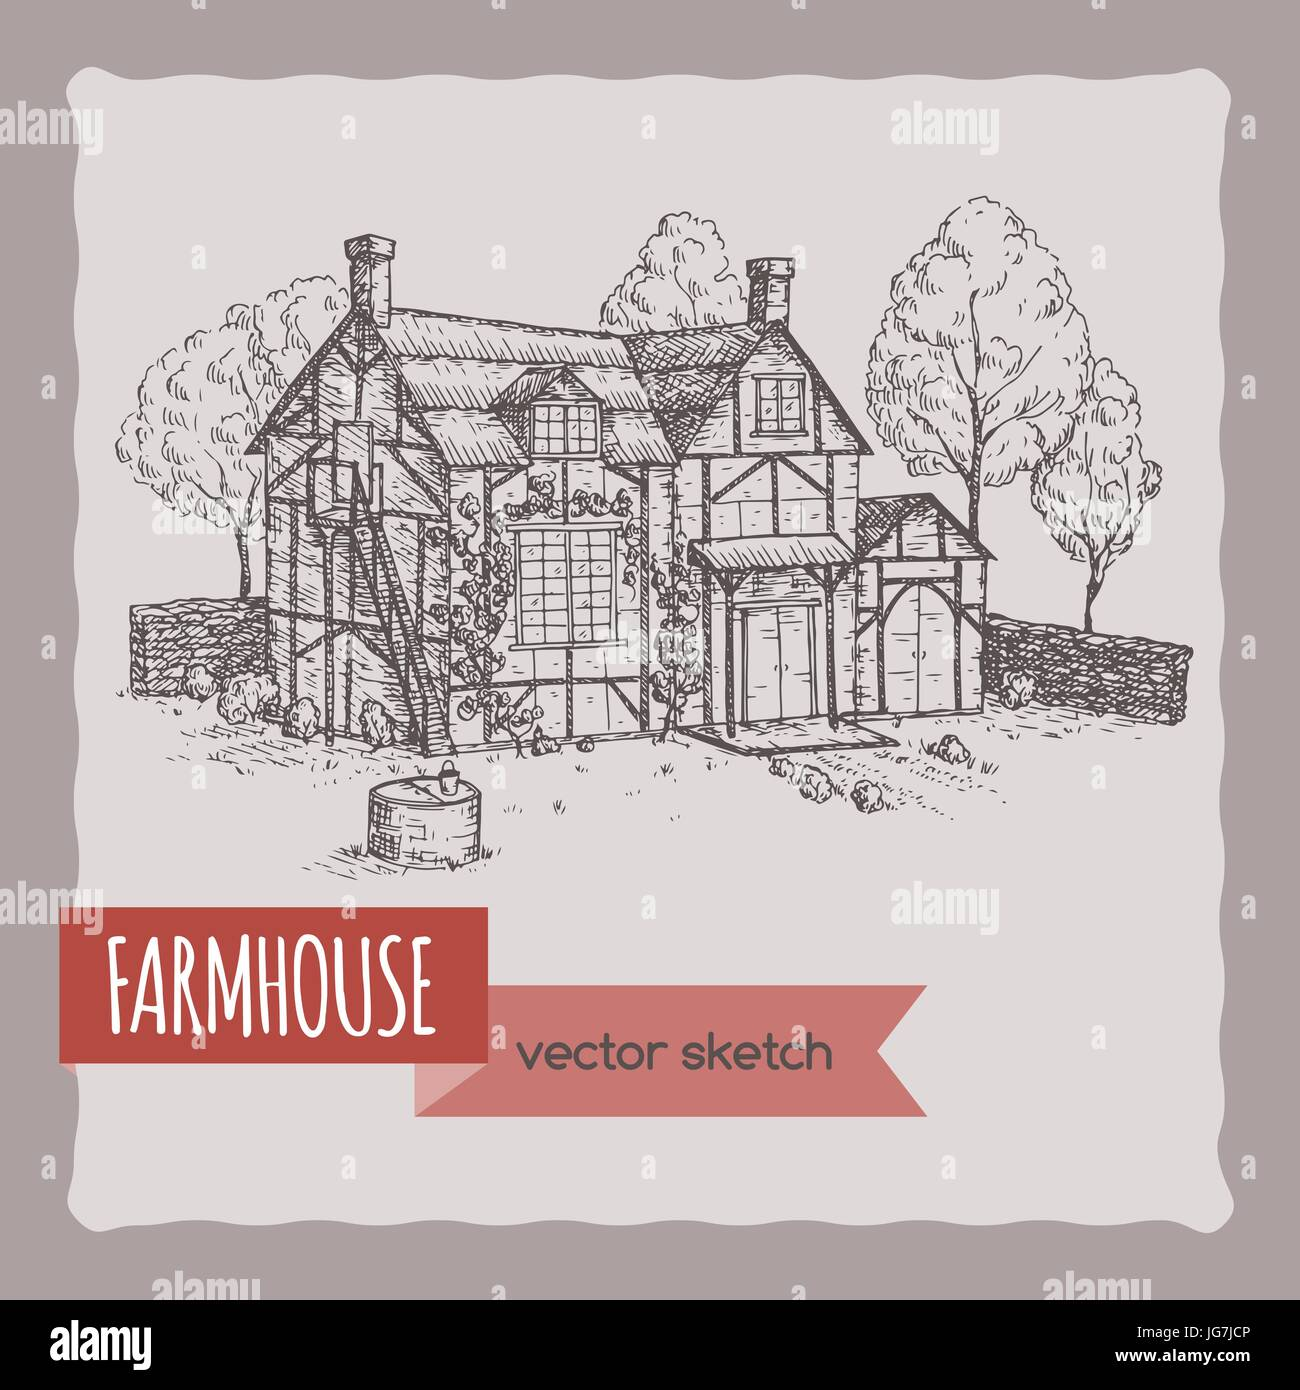 Hand Drawn Sketch With Old Farmhouse Great For Farmer Product And Travel Ads Brochures Labels